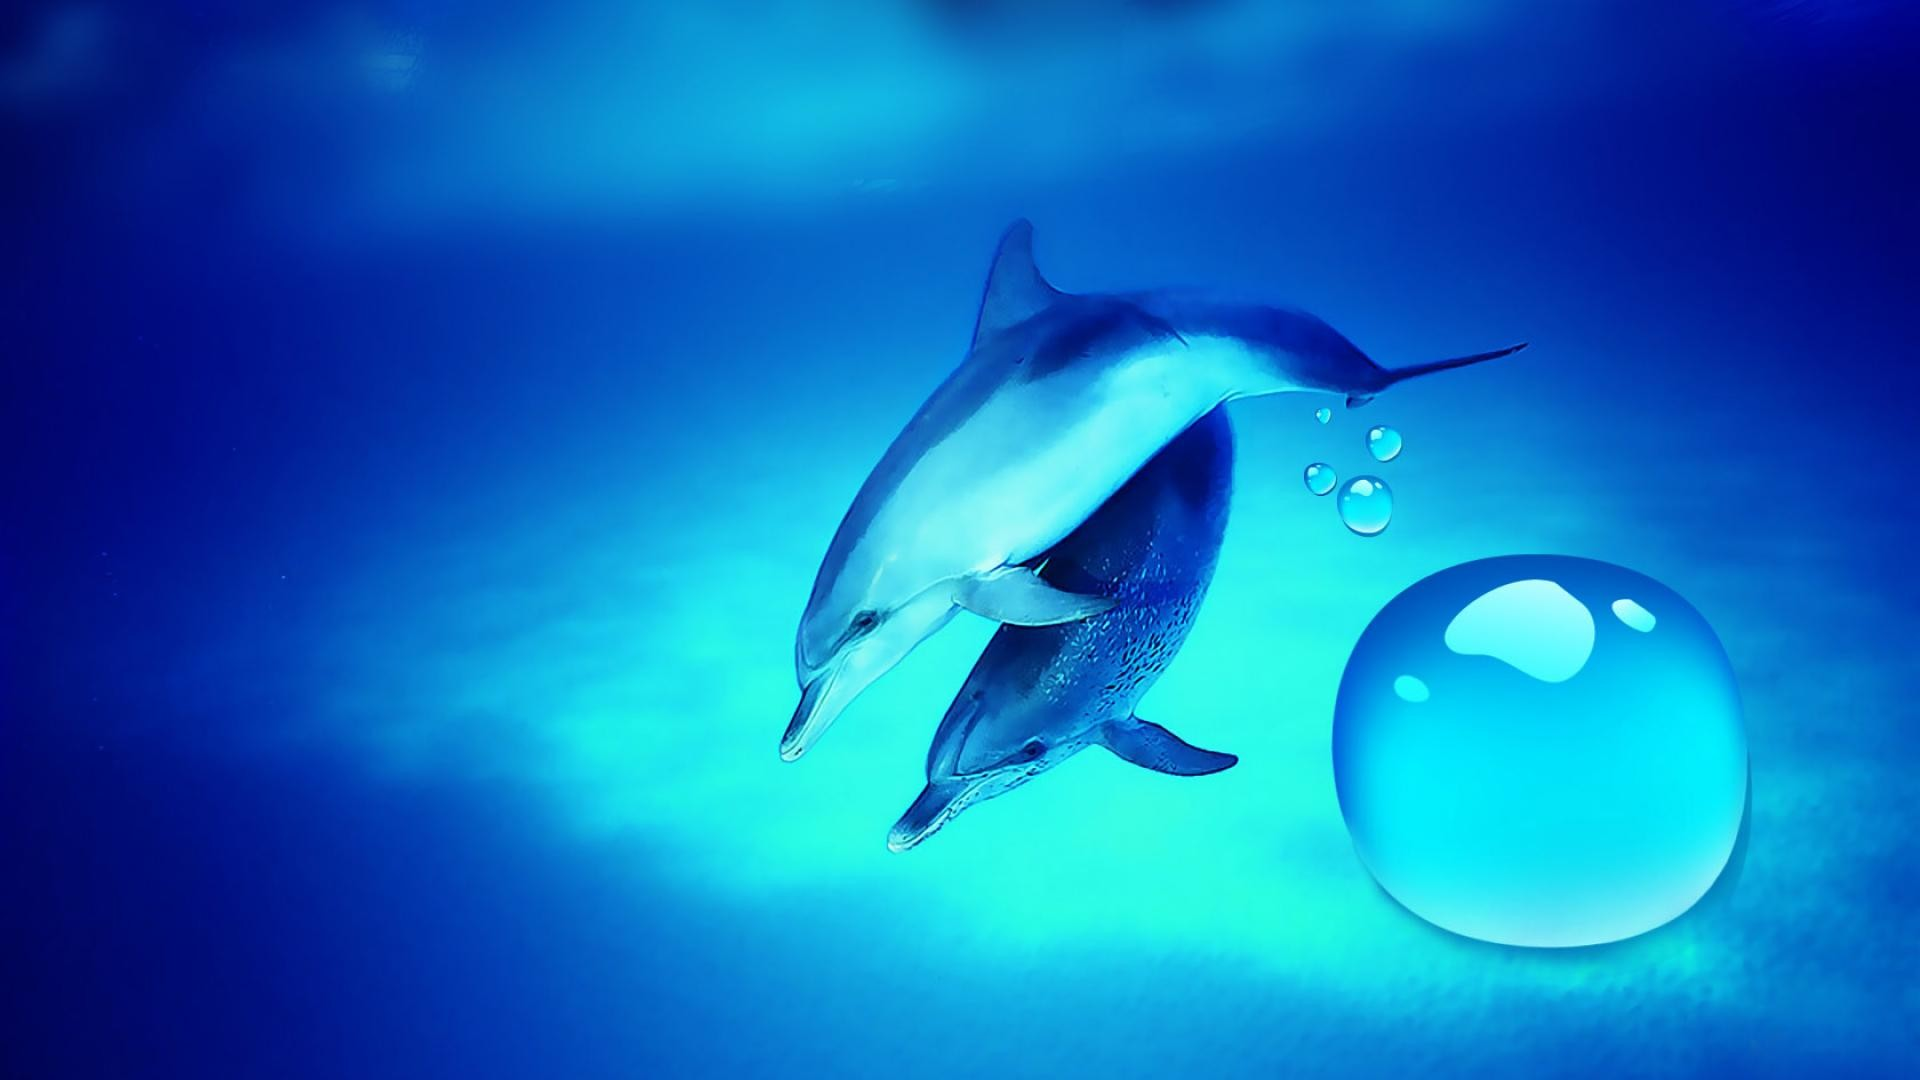 1920x1080 Free Dolphin Wallpapers For Desktop Wallpaper Dolphin Pictures Wallpapers  Wallpapers)